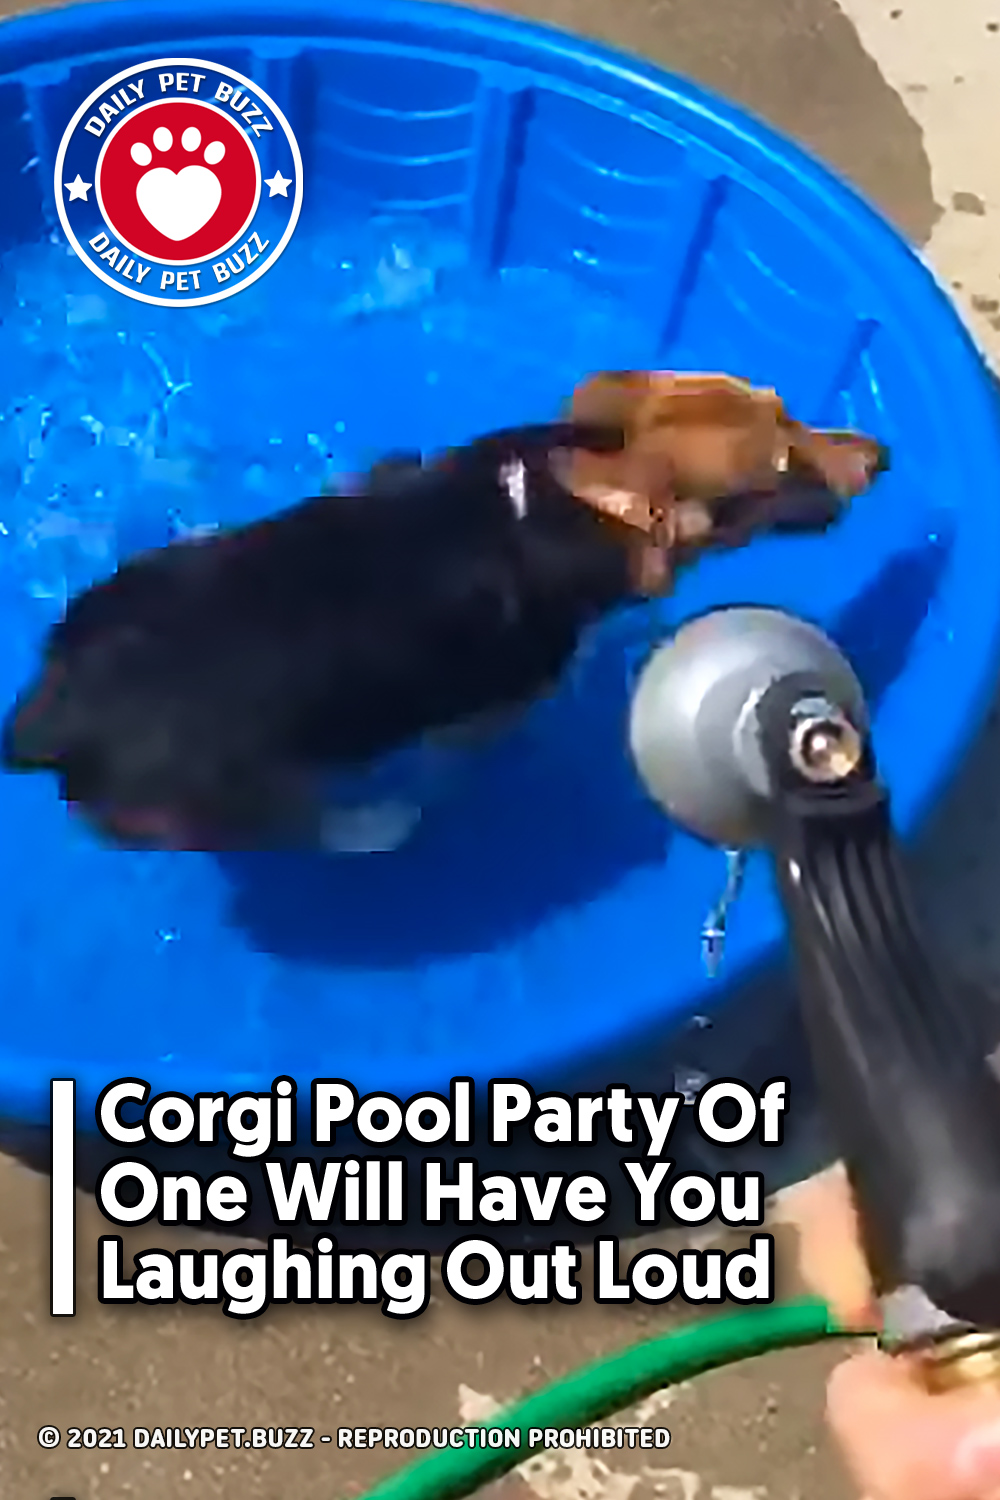 Corgi Pool Party Of One Will Have You Laughing Out Loud